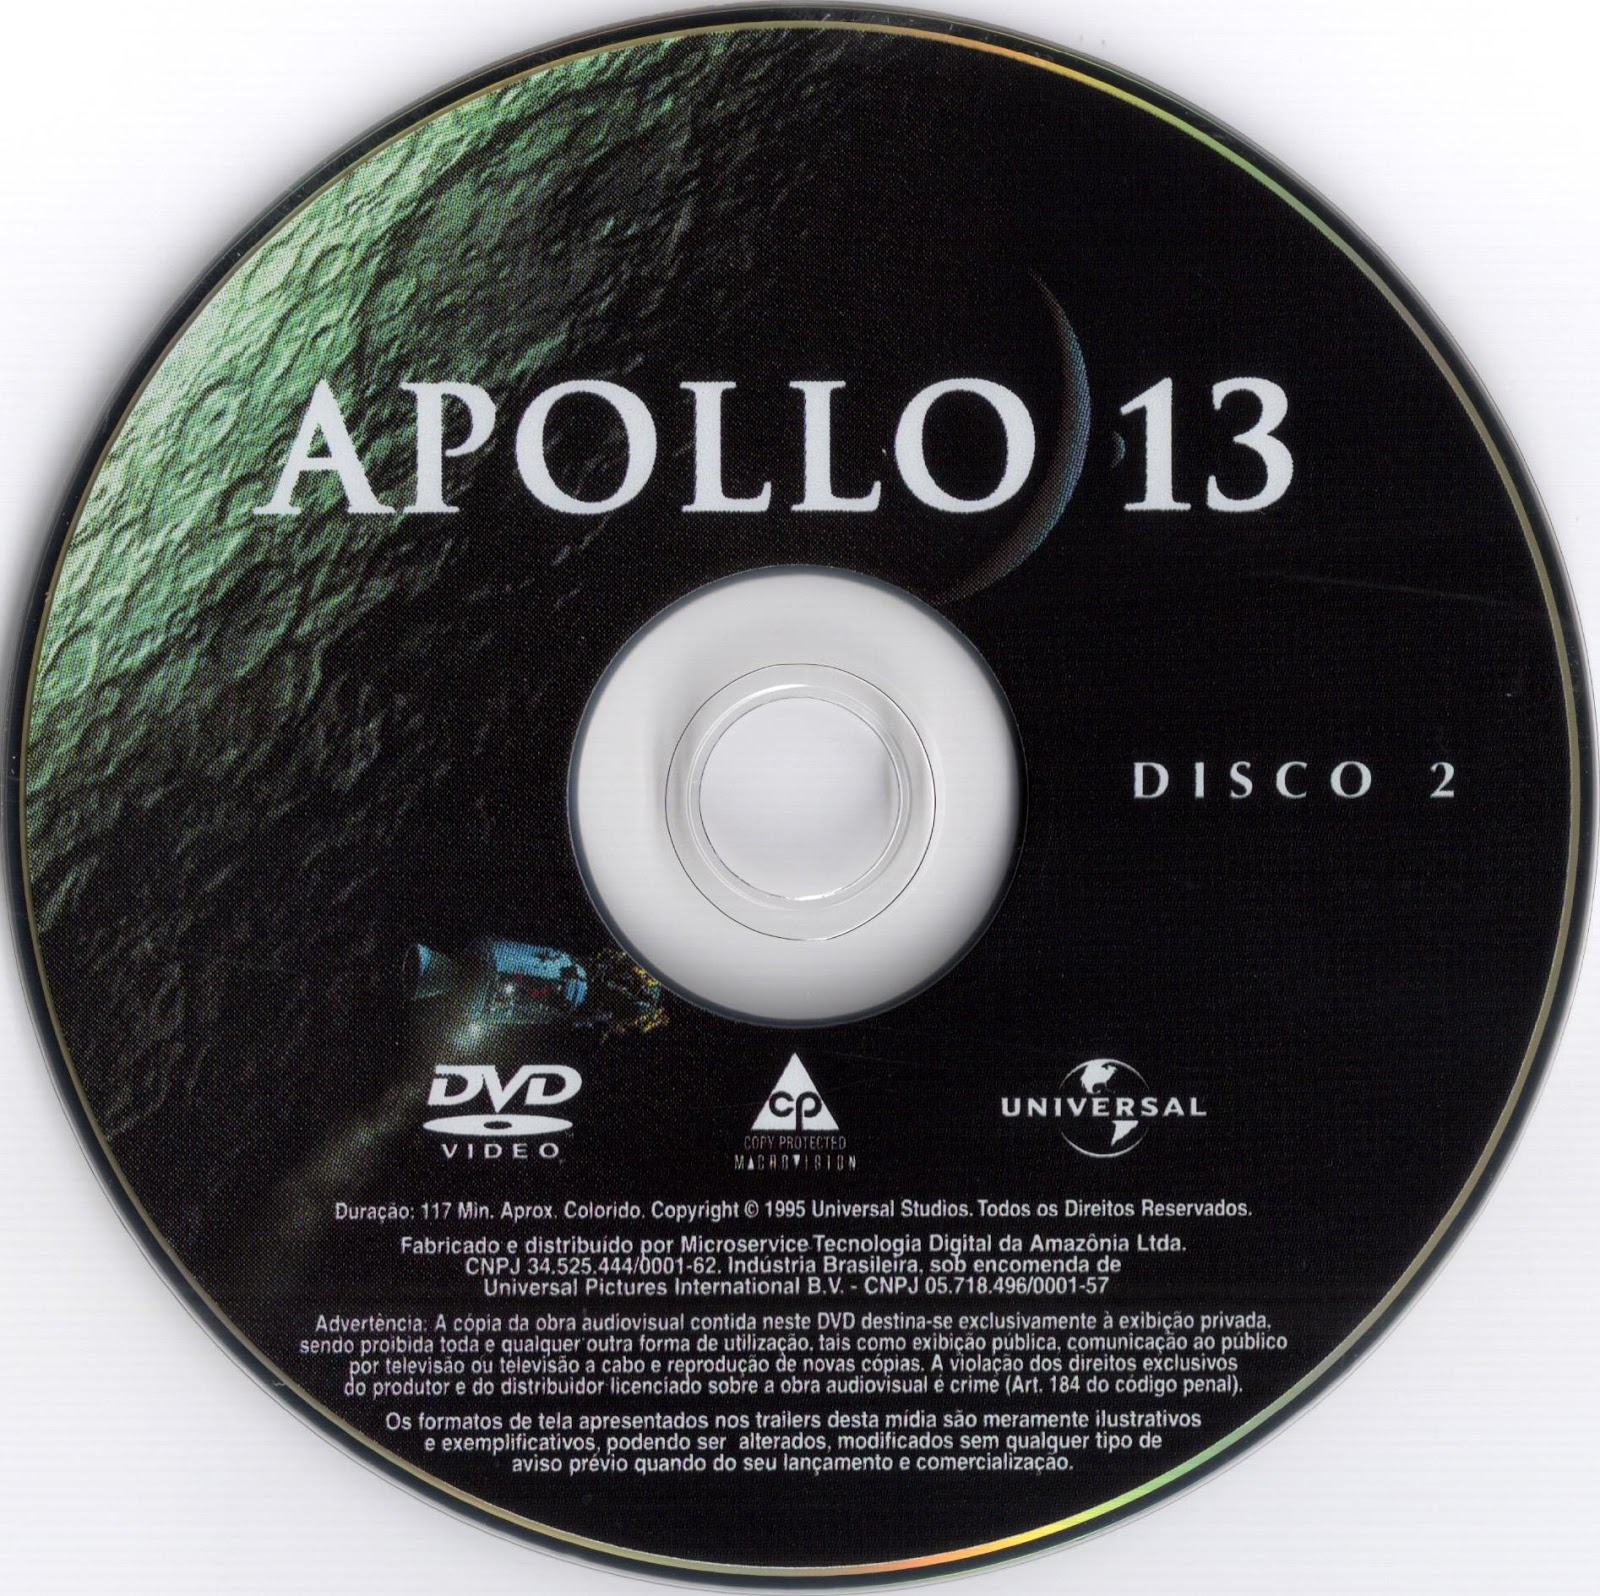 Label DVD Apollo 13 Disco 2